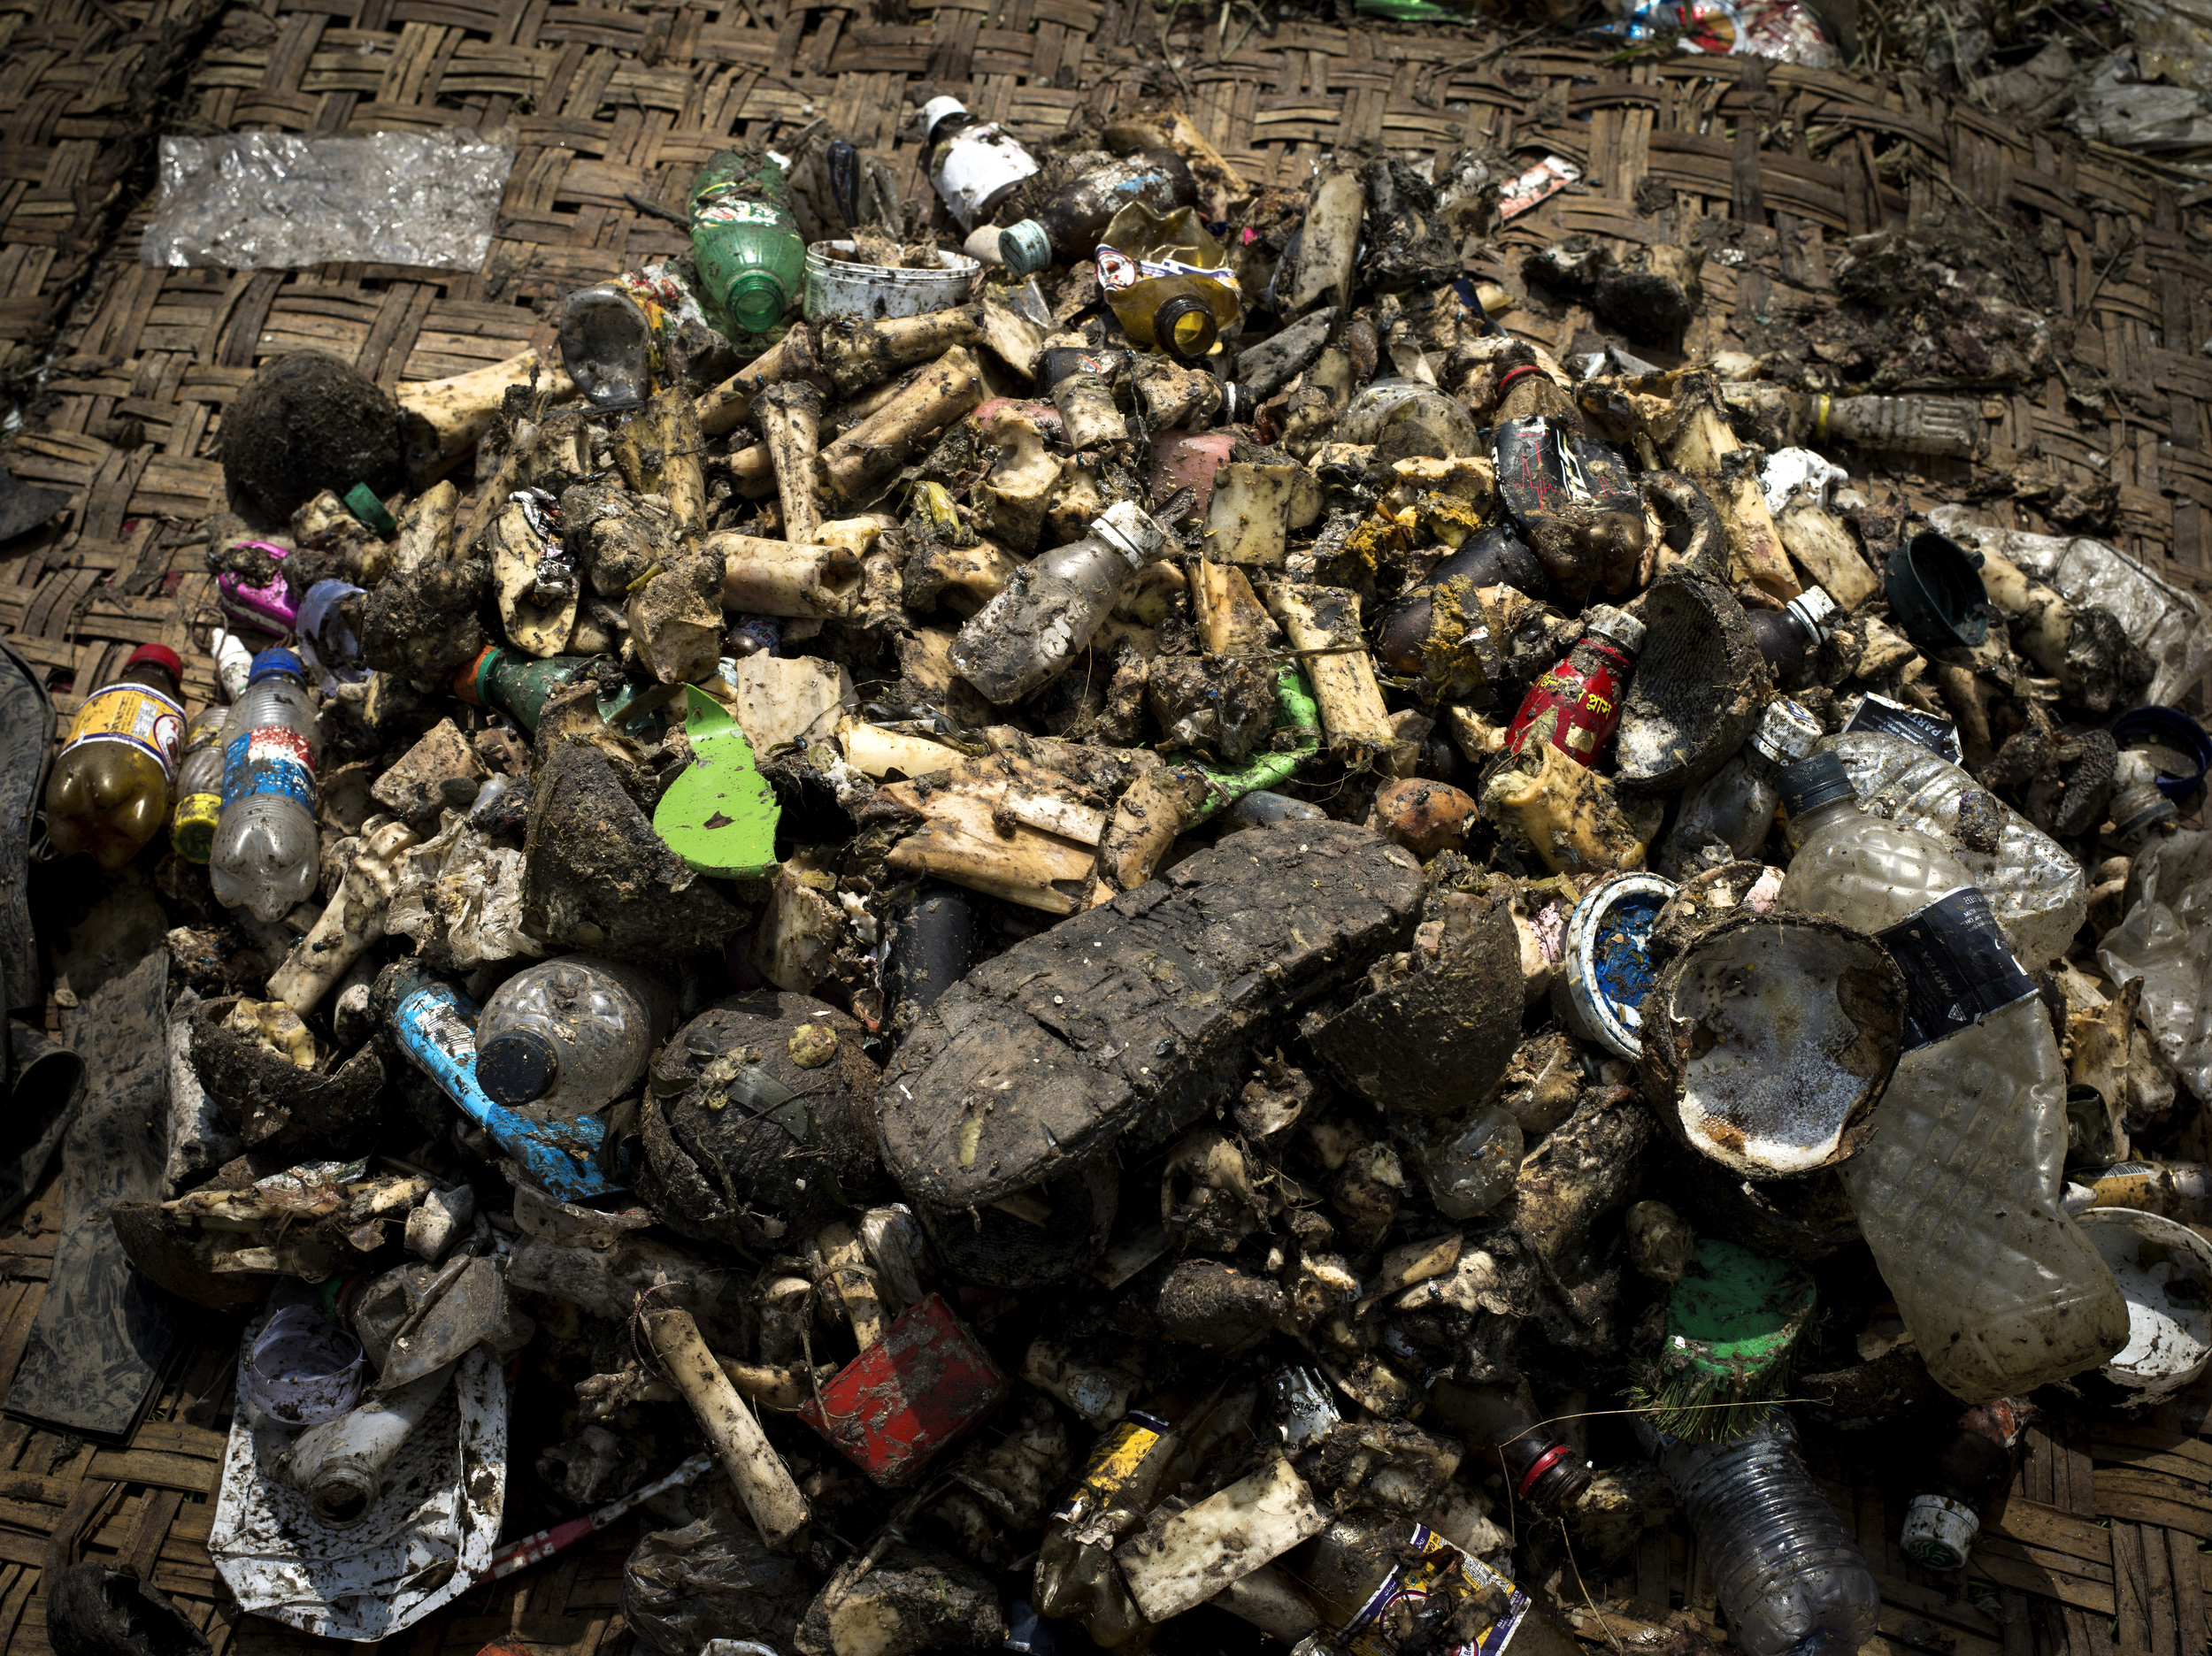 Plastics, bones and rubber collected from Mutuail Landfill in Dhaka, Bangladesh.